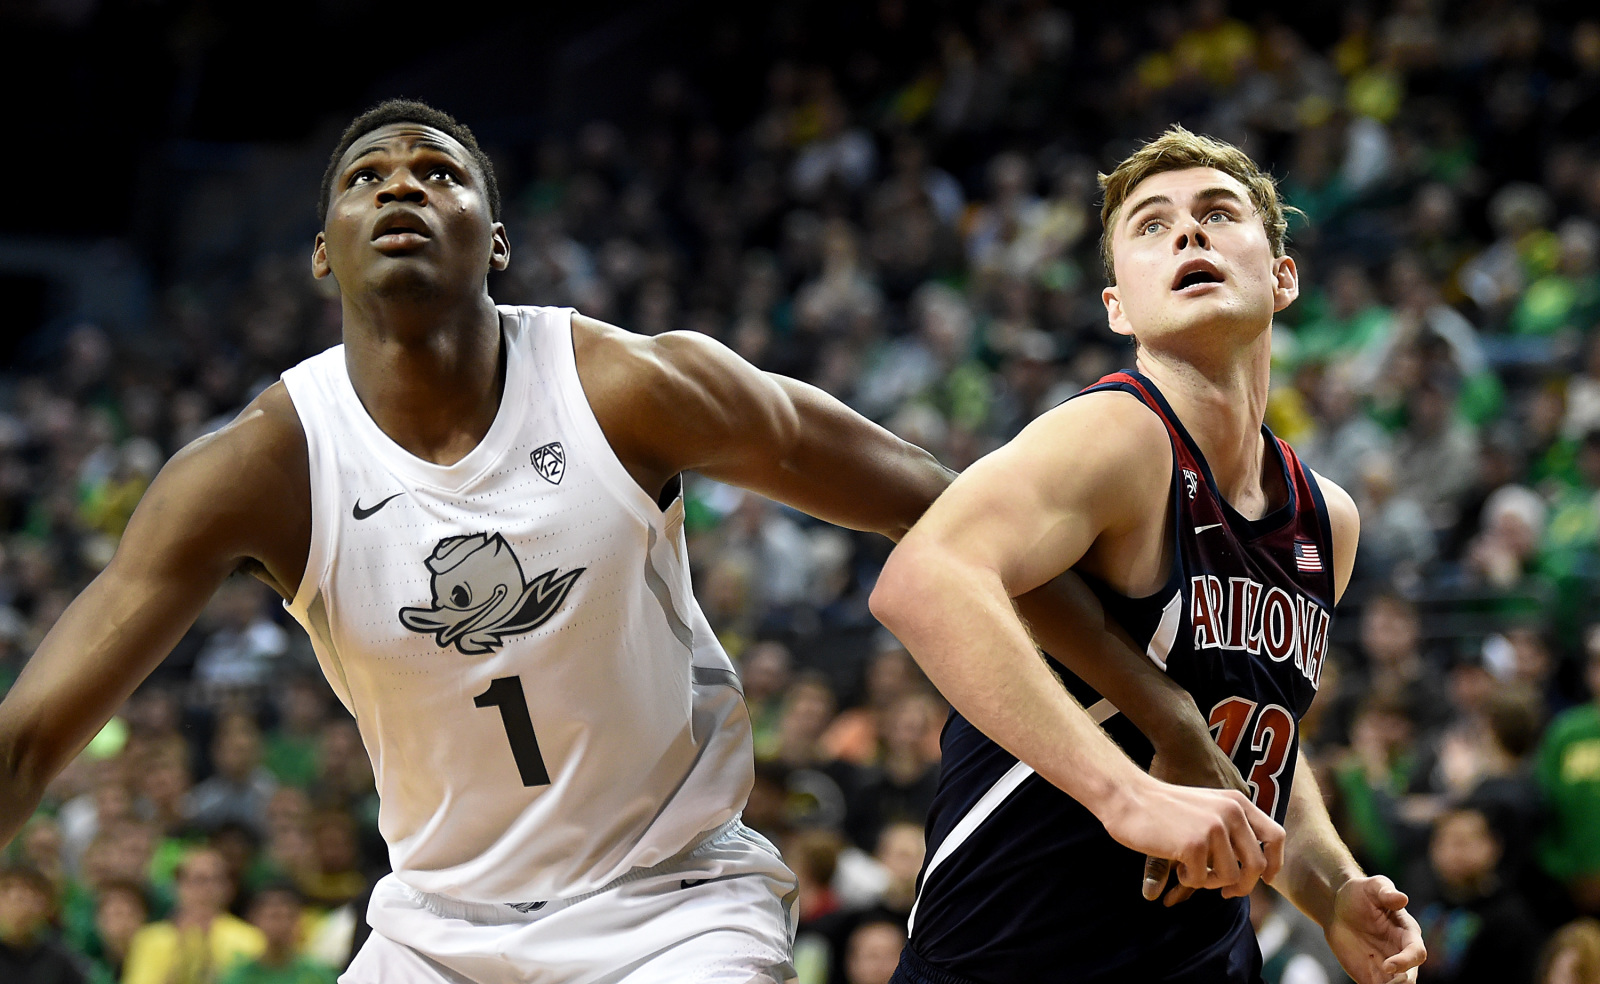 Arizona Basketball: Redemption week for the Wildcats